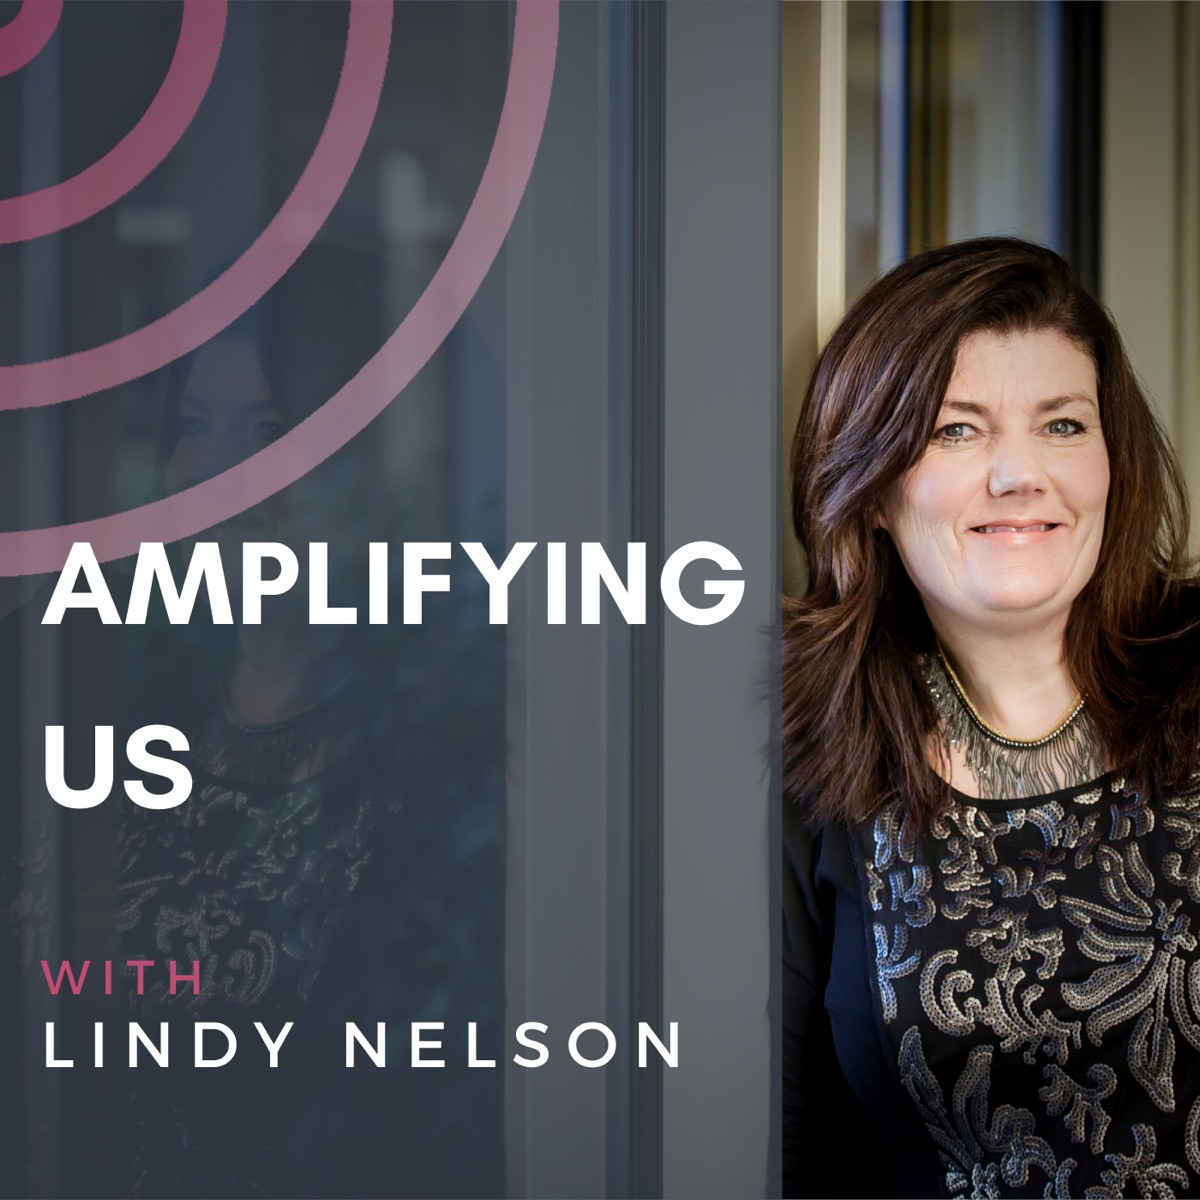 Amplifying Us with Lindy Nelson